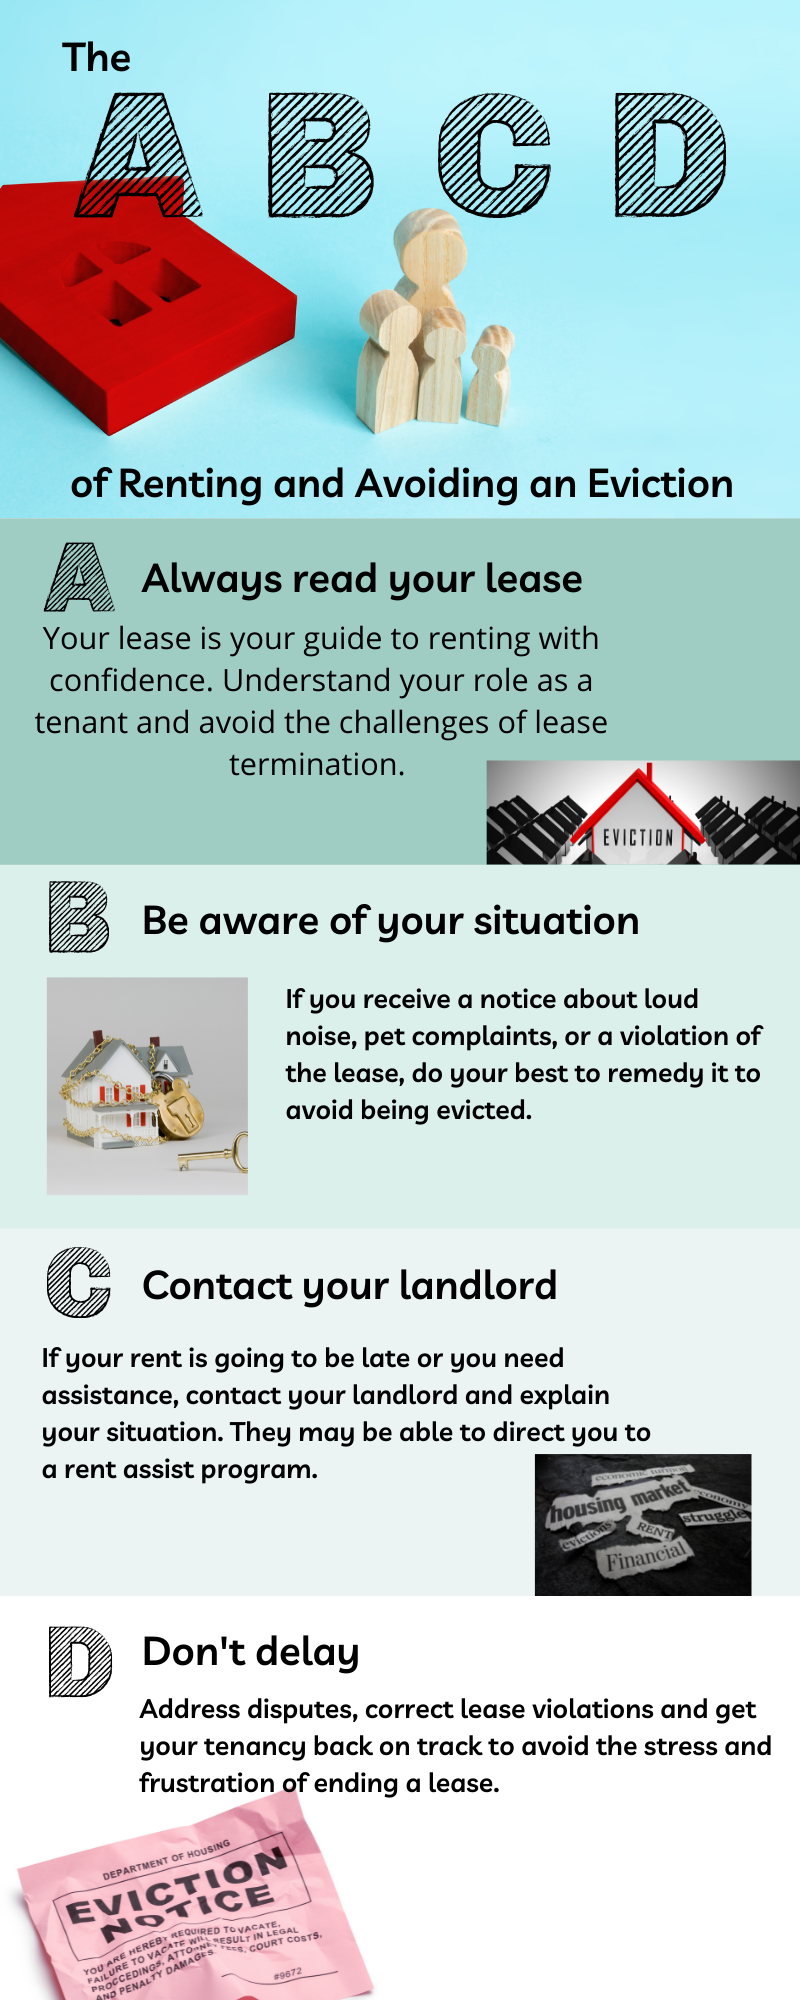 An infographic in the format of ABCD giving four ways to understand renting and avoid eviction.